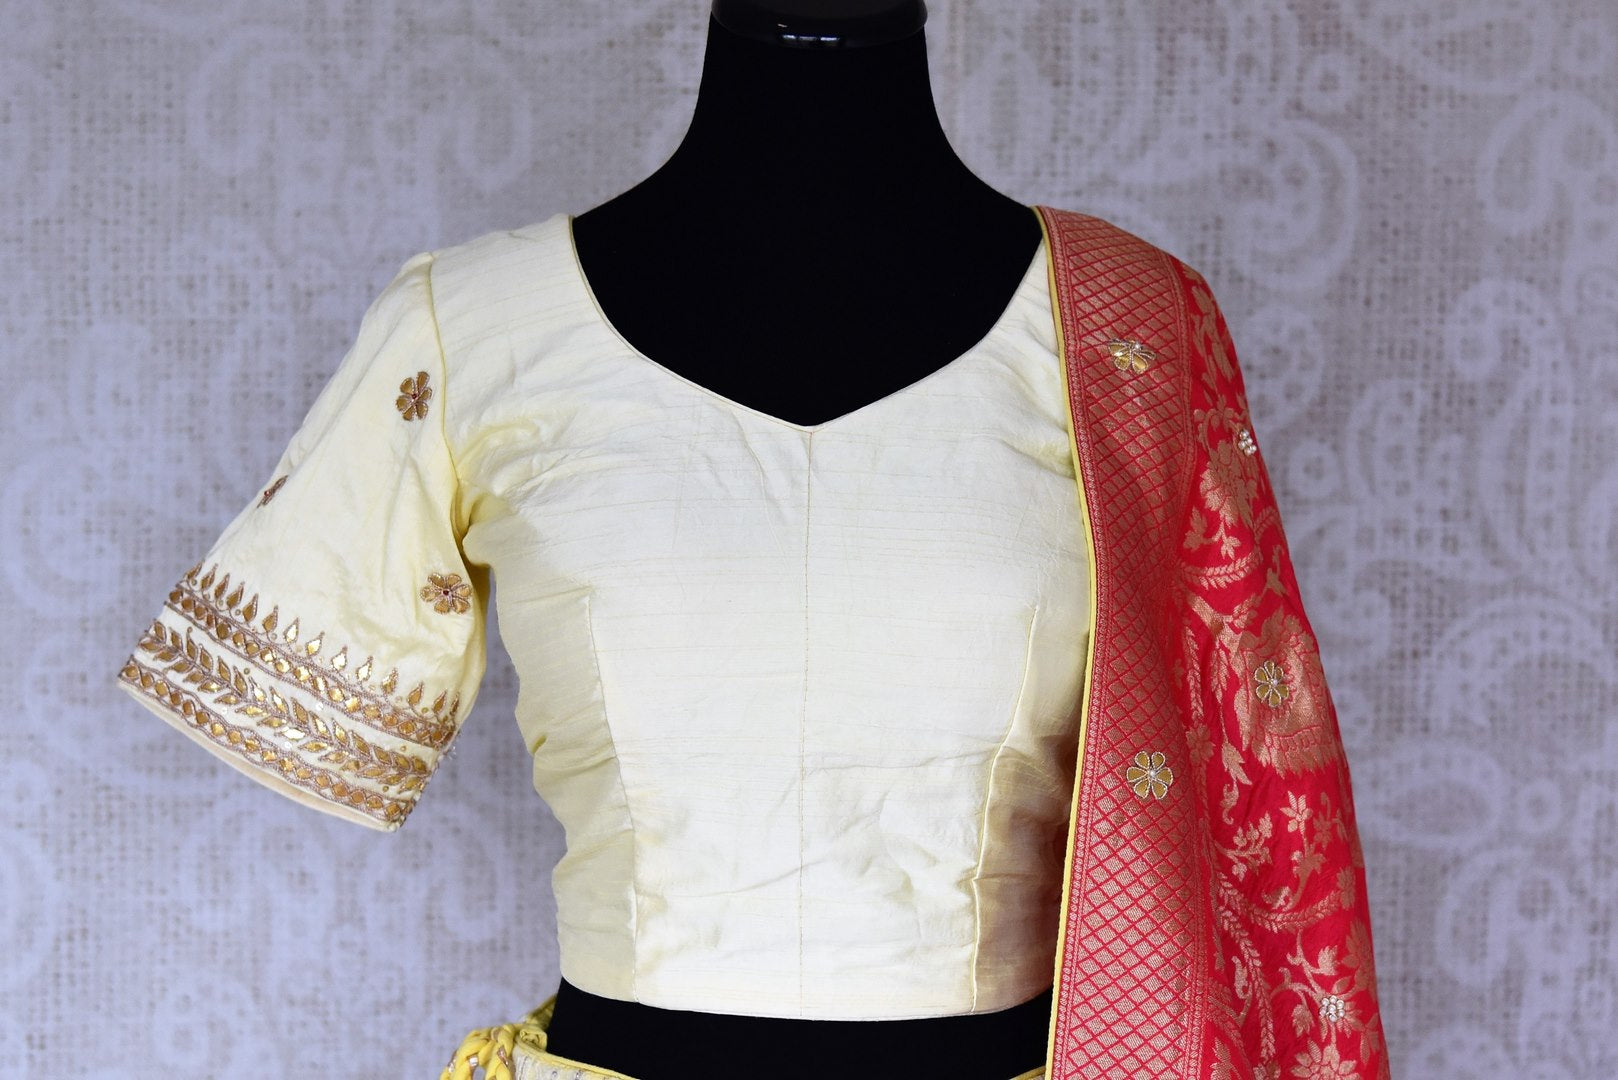 Shop lemon yellow Lucknowi lehenga online in USA with pink dupatta. Make fashionable choices with latest Indian designer clothing from Pure Elegance Indian fashion store in USA. Shop Indian salwar suits, designer Anarkali suits and bridal lehengas for Indian brides in USA from our online store.-front